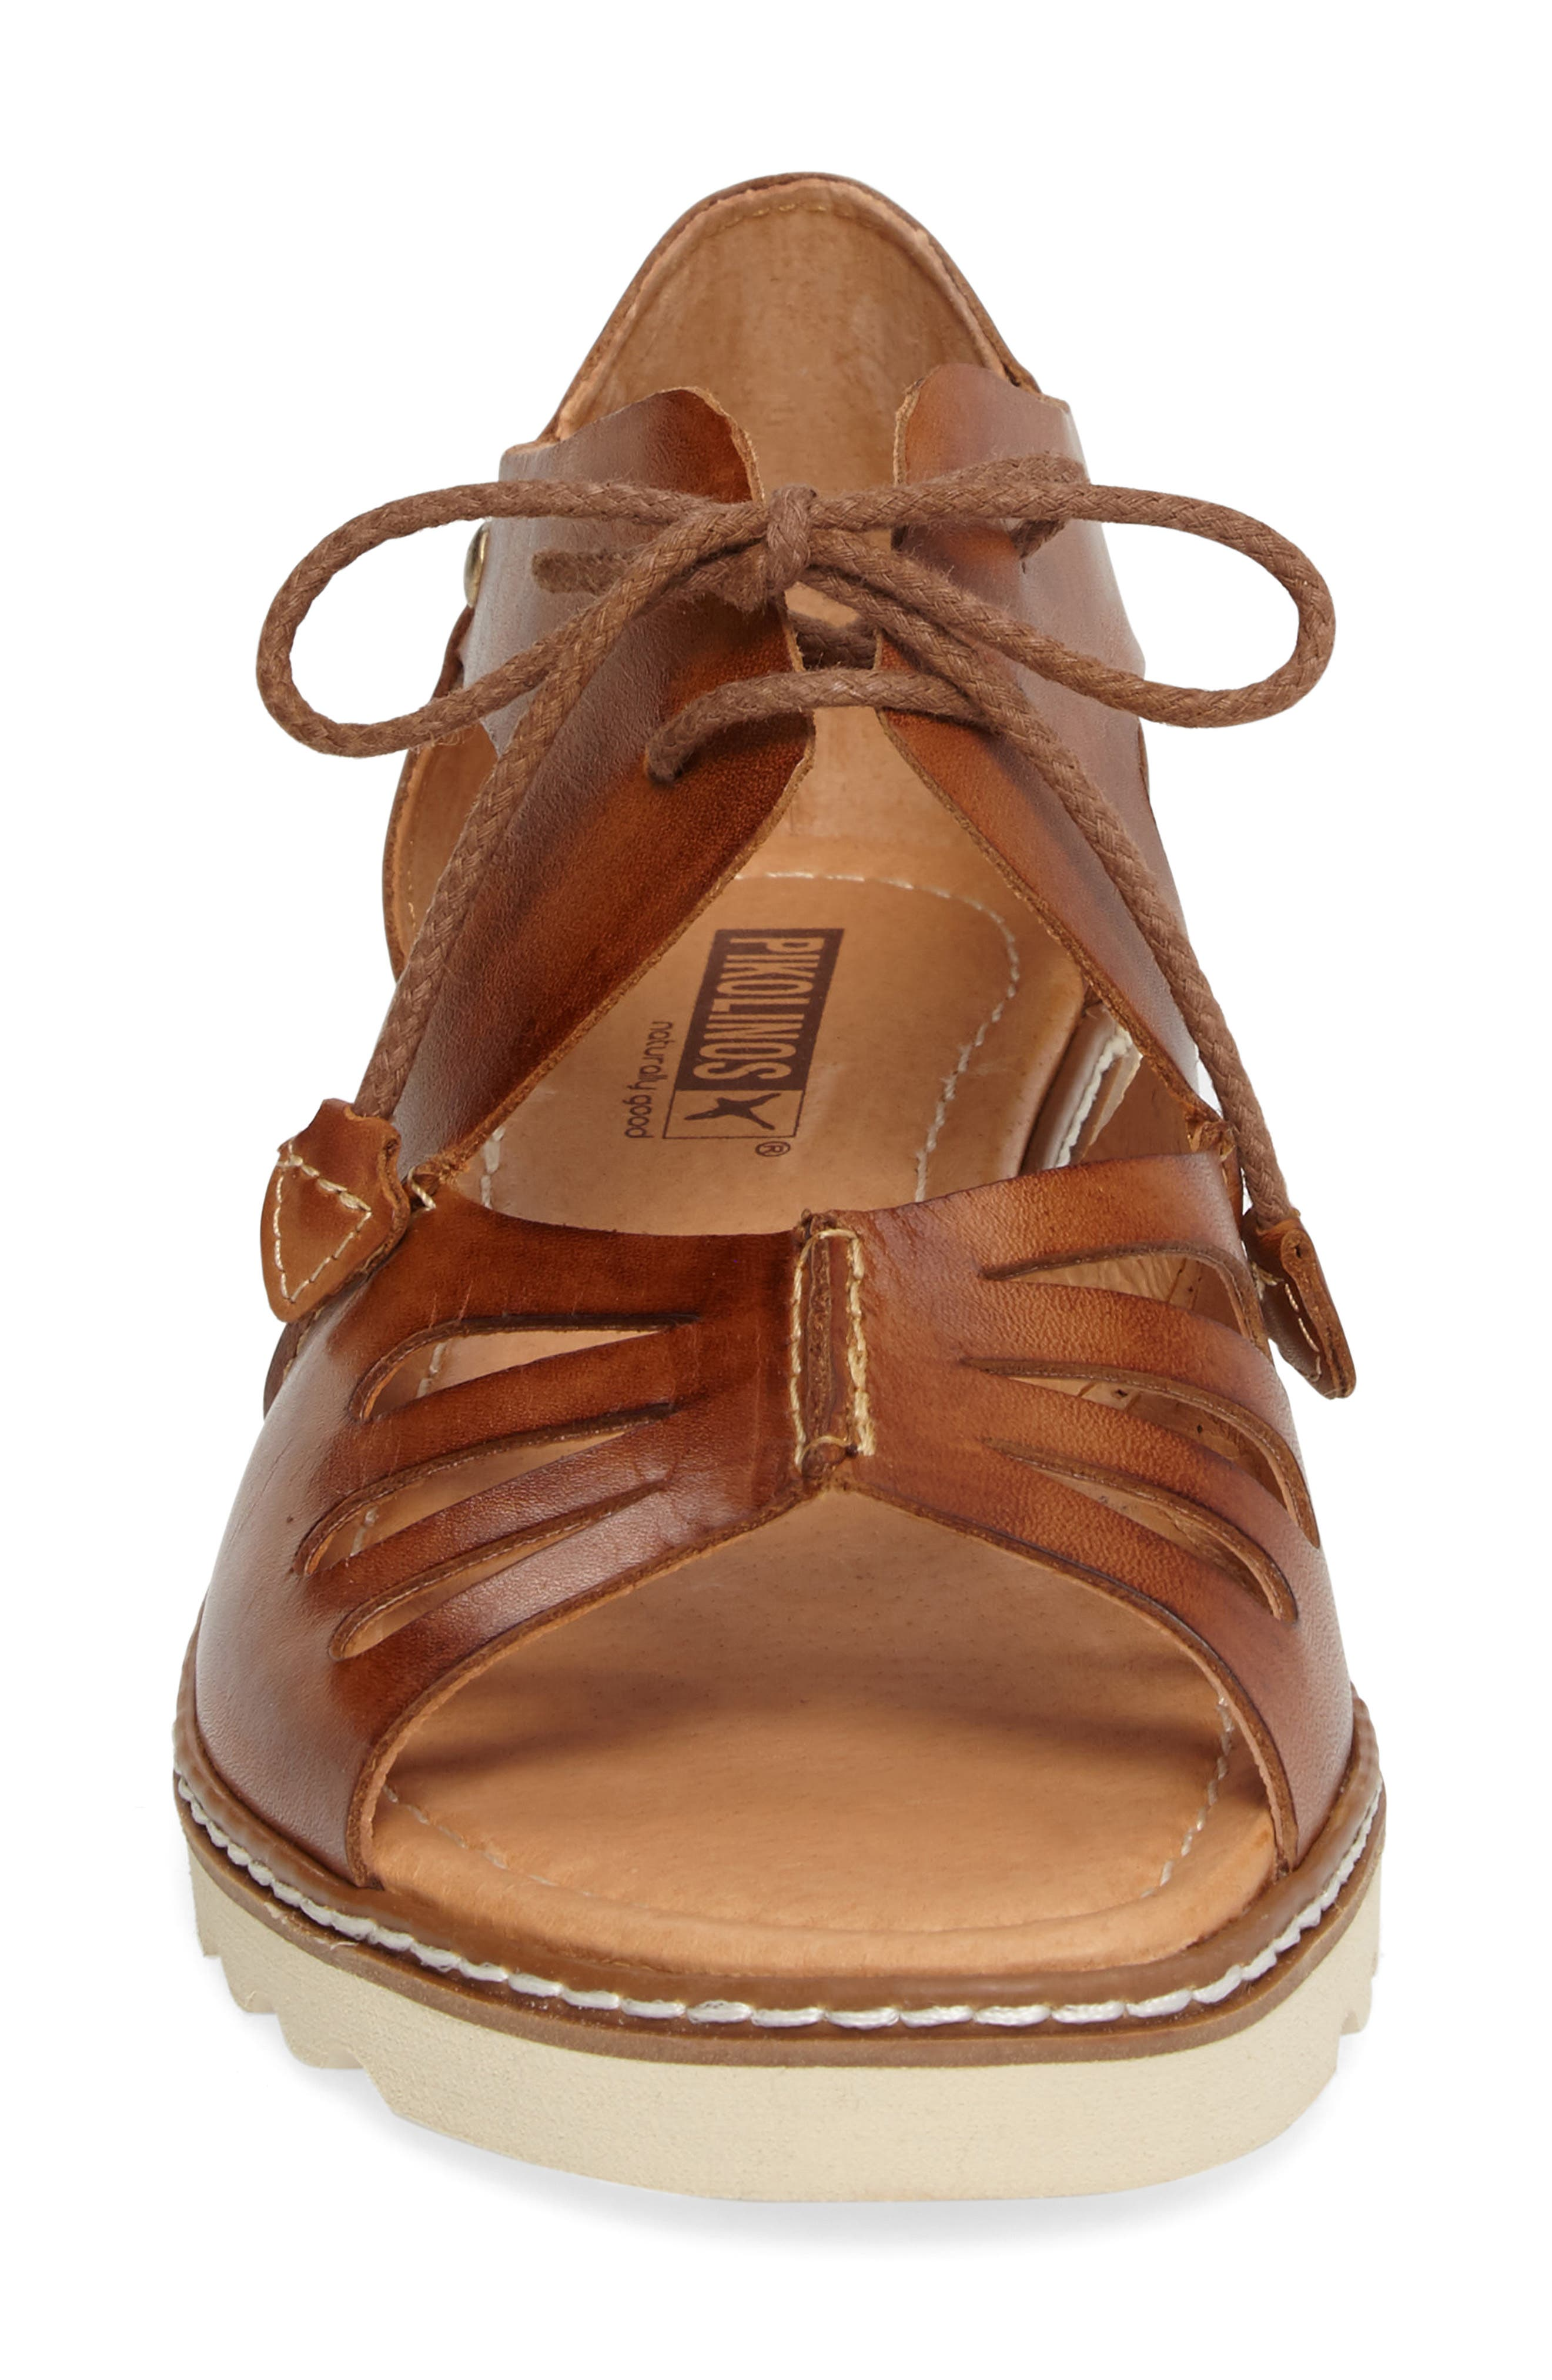 PIKOLINOS,                             Alcudia Lace-Up Sandal,                             Alternate thumbnail 4, color,                             BRANDY LEATHER